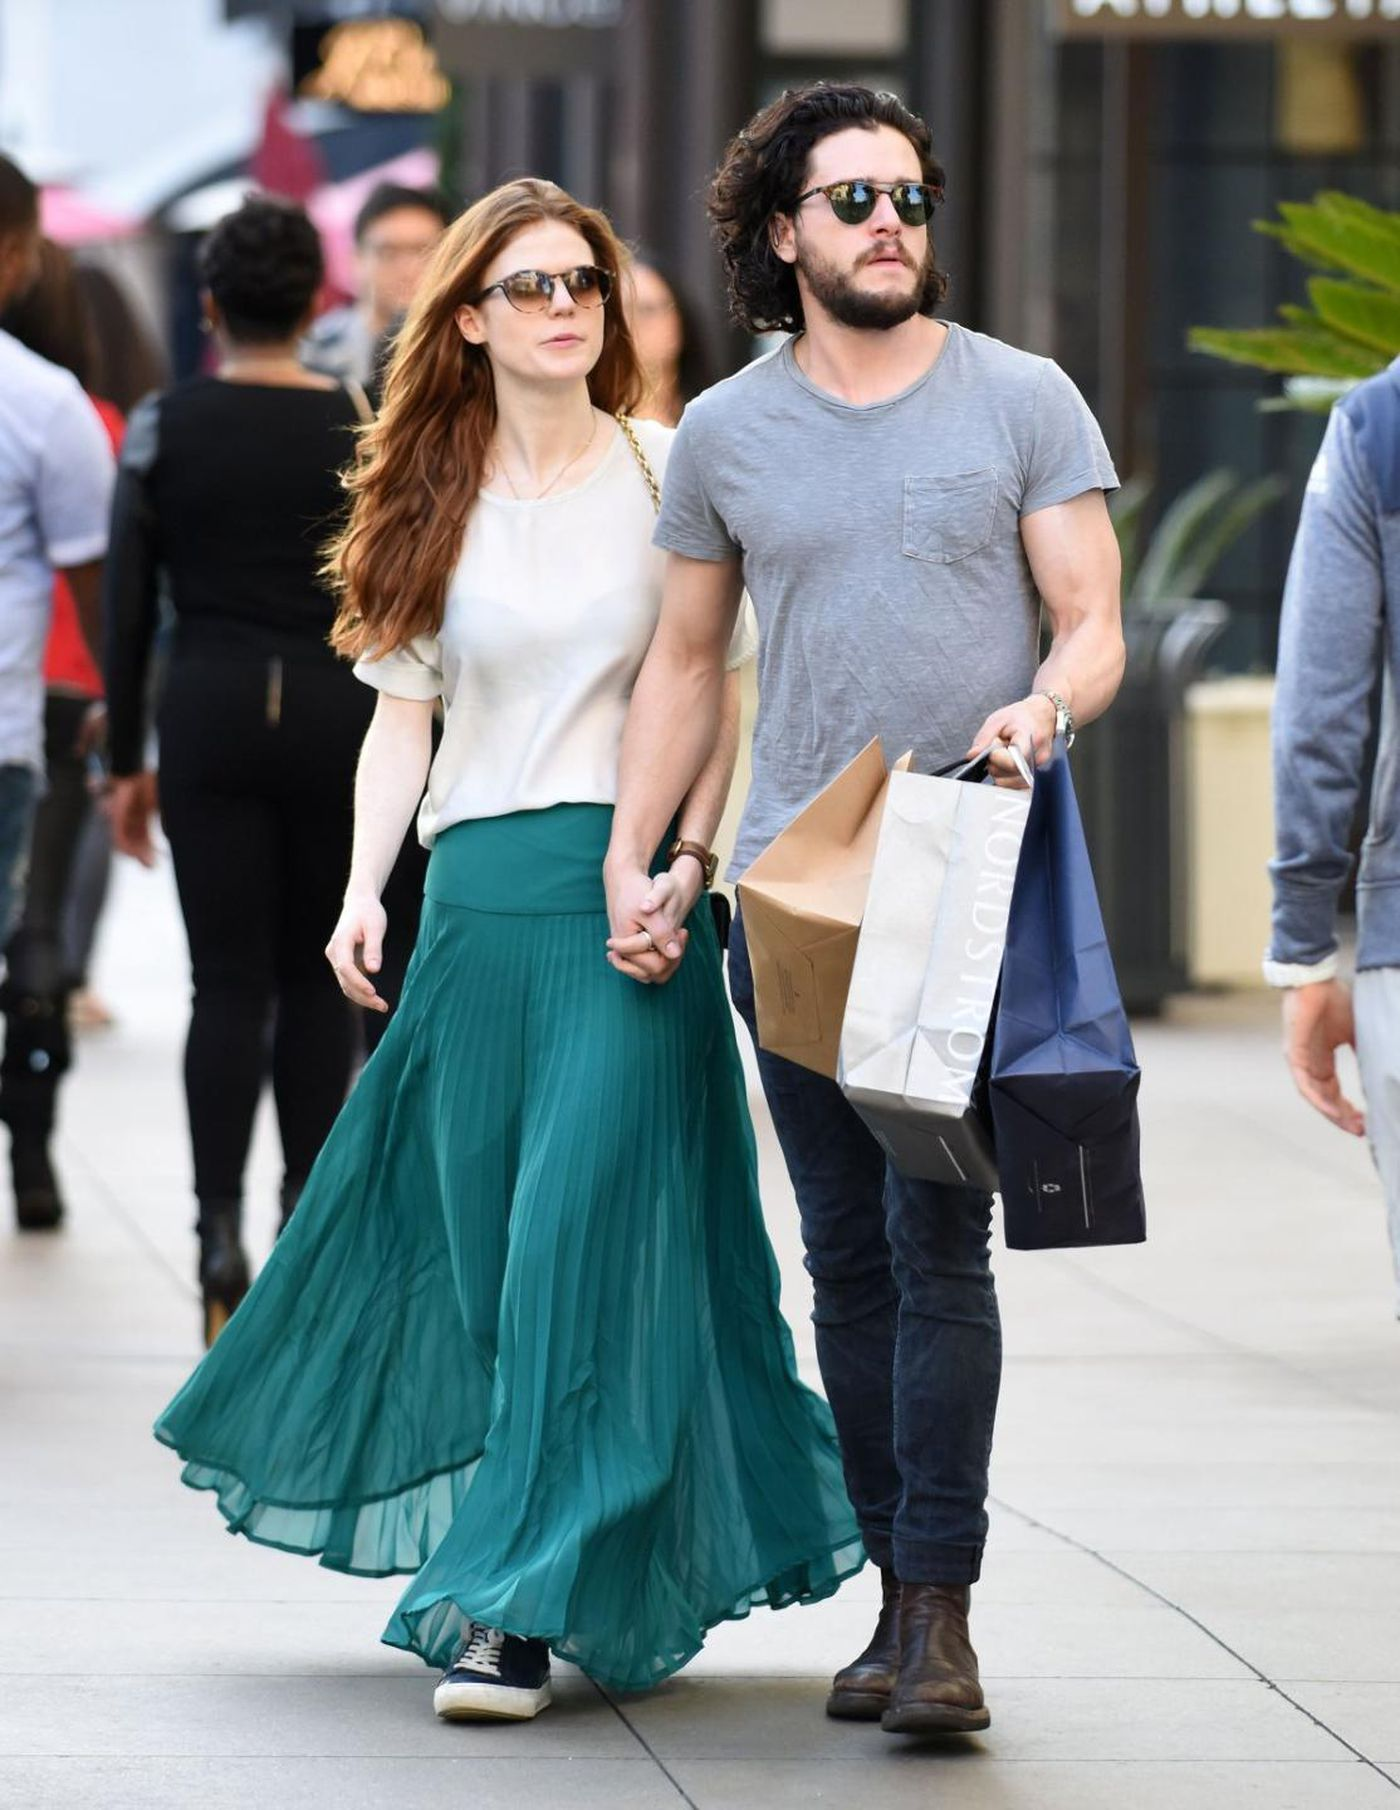 Game of Thrones  couple alert  Kit Harington and Rose Leslie reunite      Game of Thrones  couple alert  Kit Harington and Rose Leslie reunite   spotted